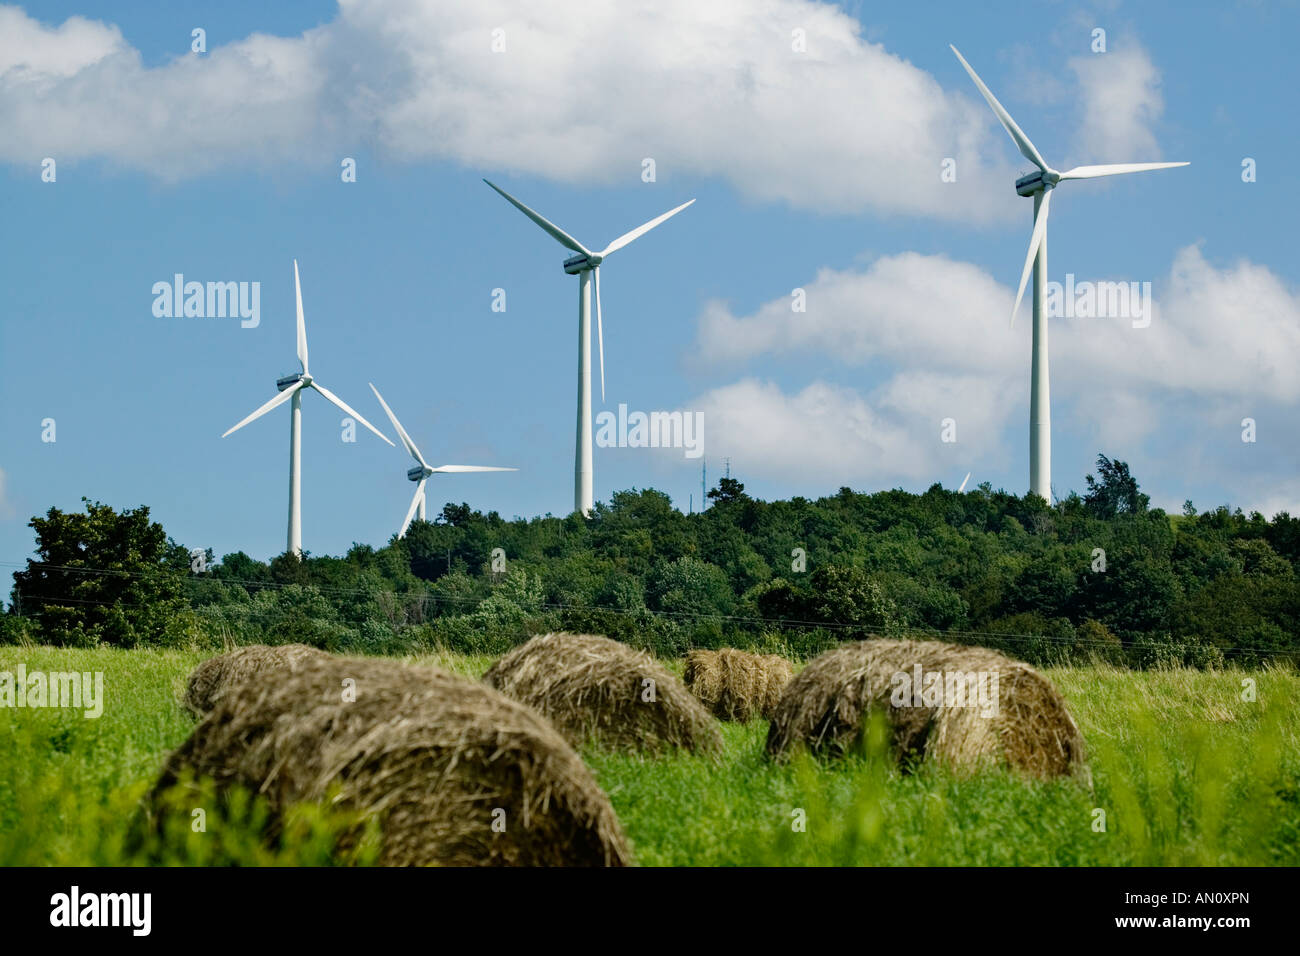 Wind-Turbine-Generator Madison Upstate New York Route 20 große Western Turnpike Stockbild